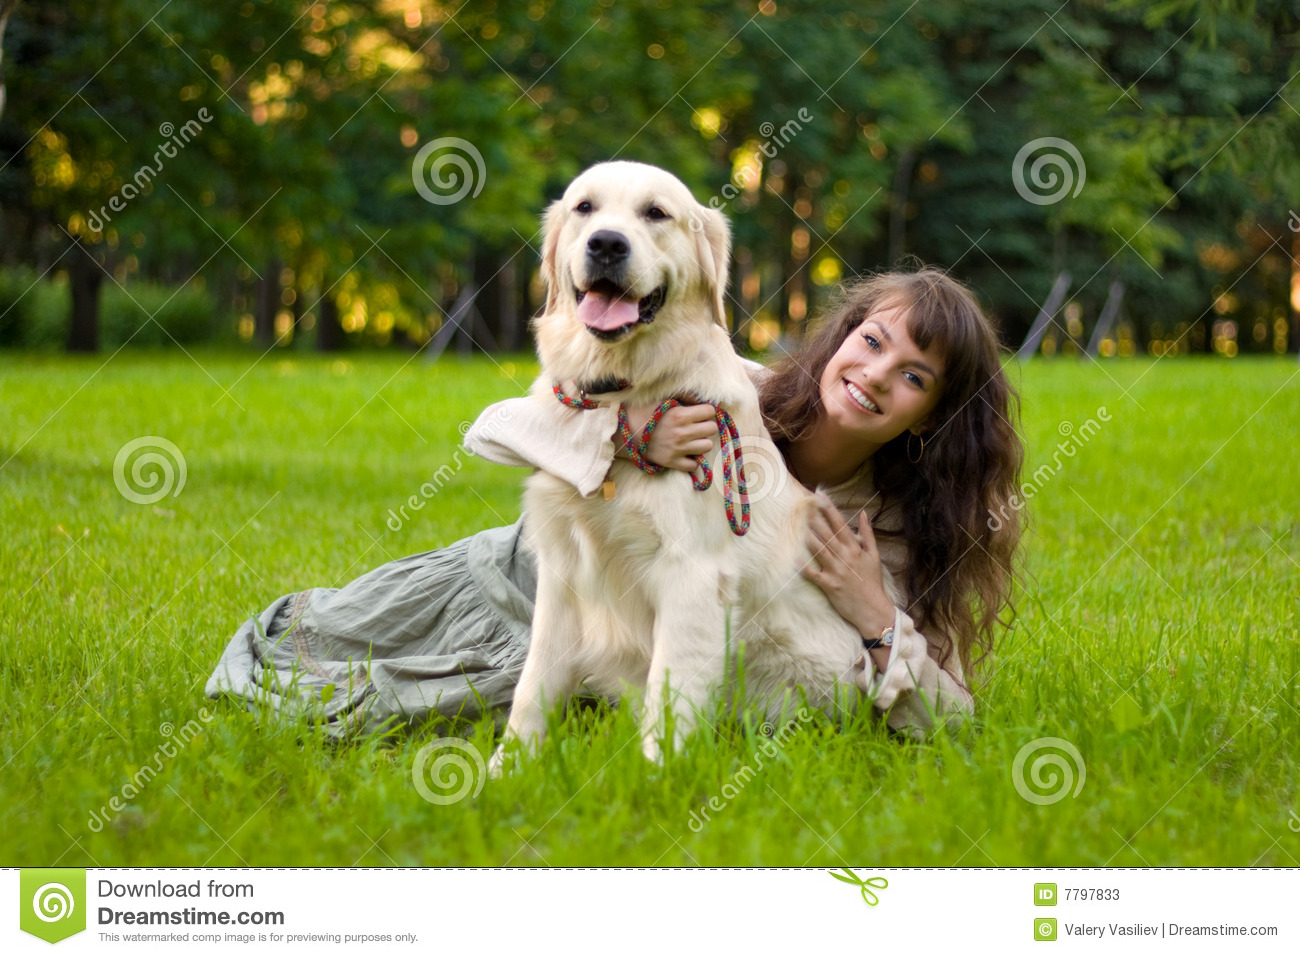 Girl with a dog on the grass